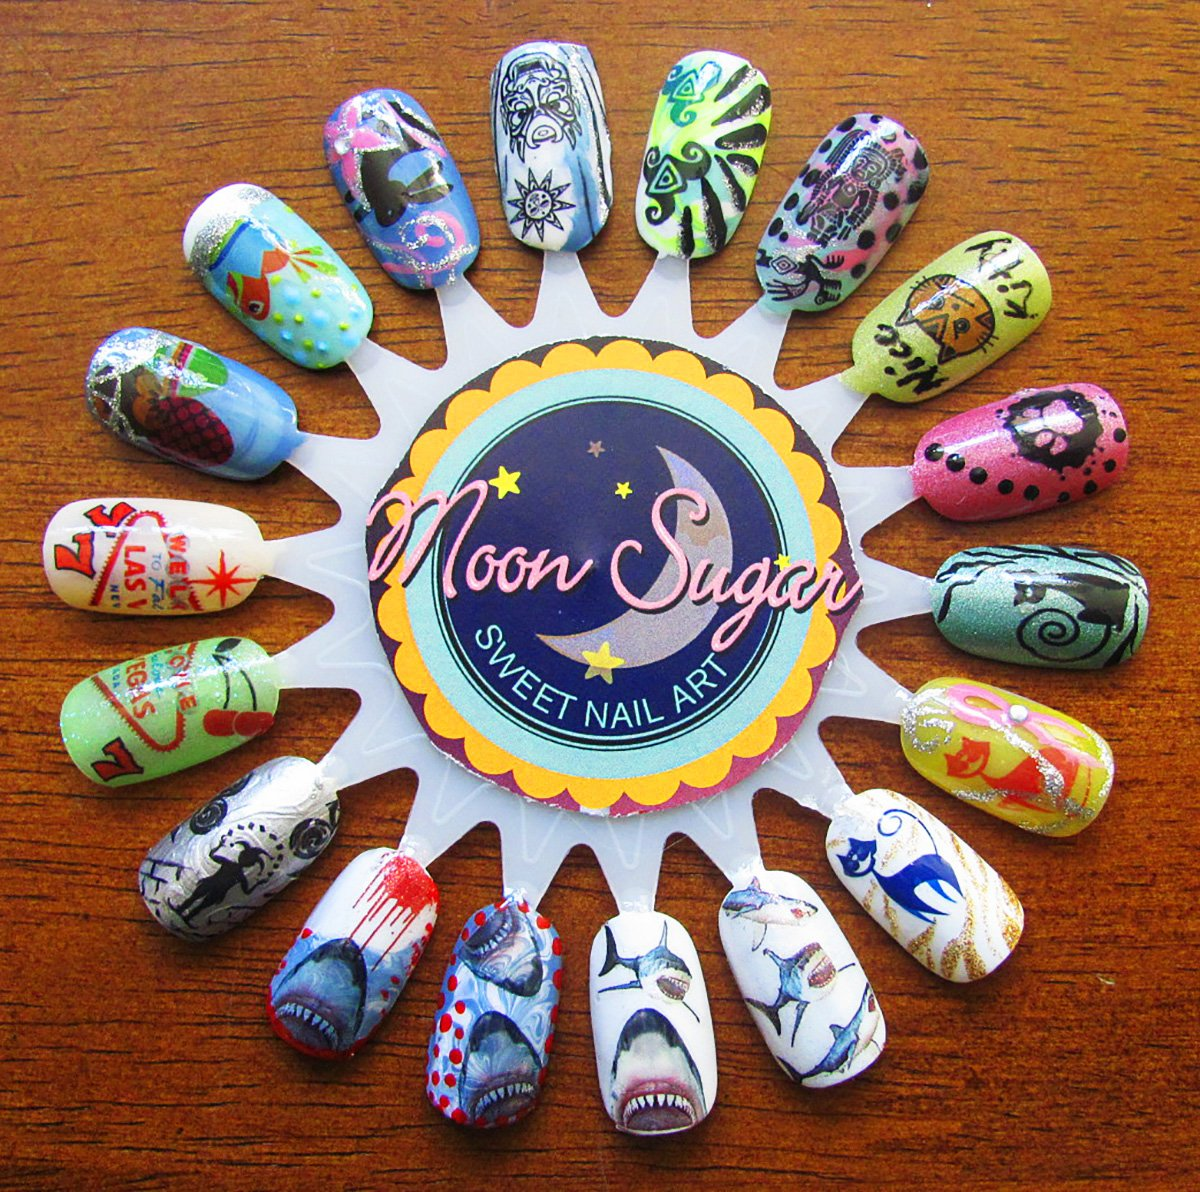 Nail Art Ideas nail art water decal : Amazon.com: Angel Wings Water Slide Nail Art Decals - Salon ...